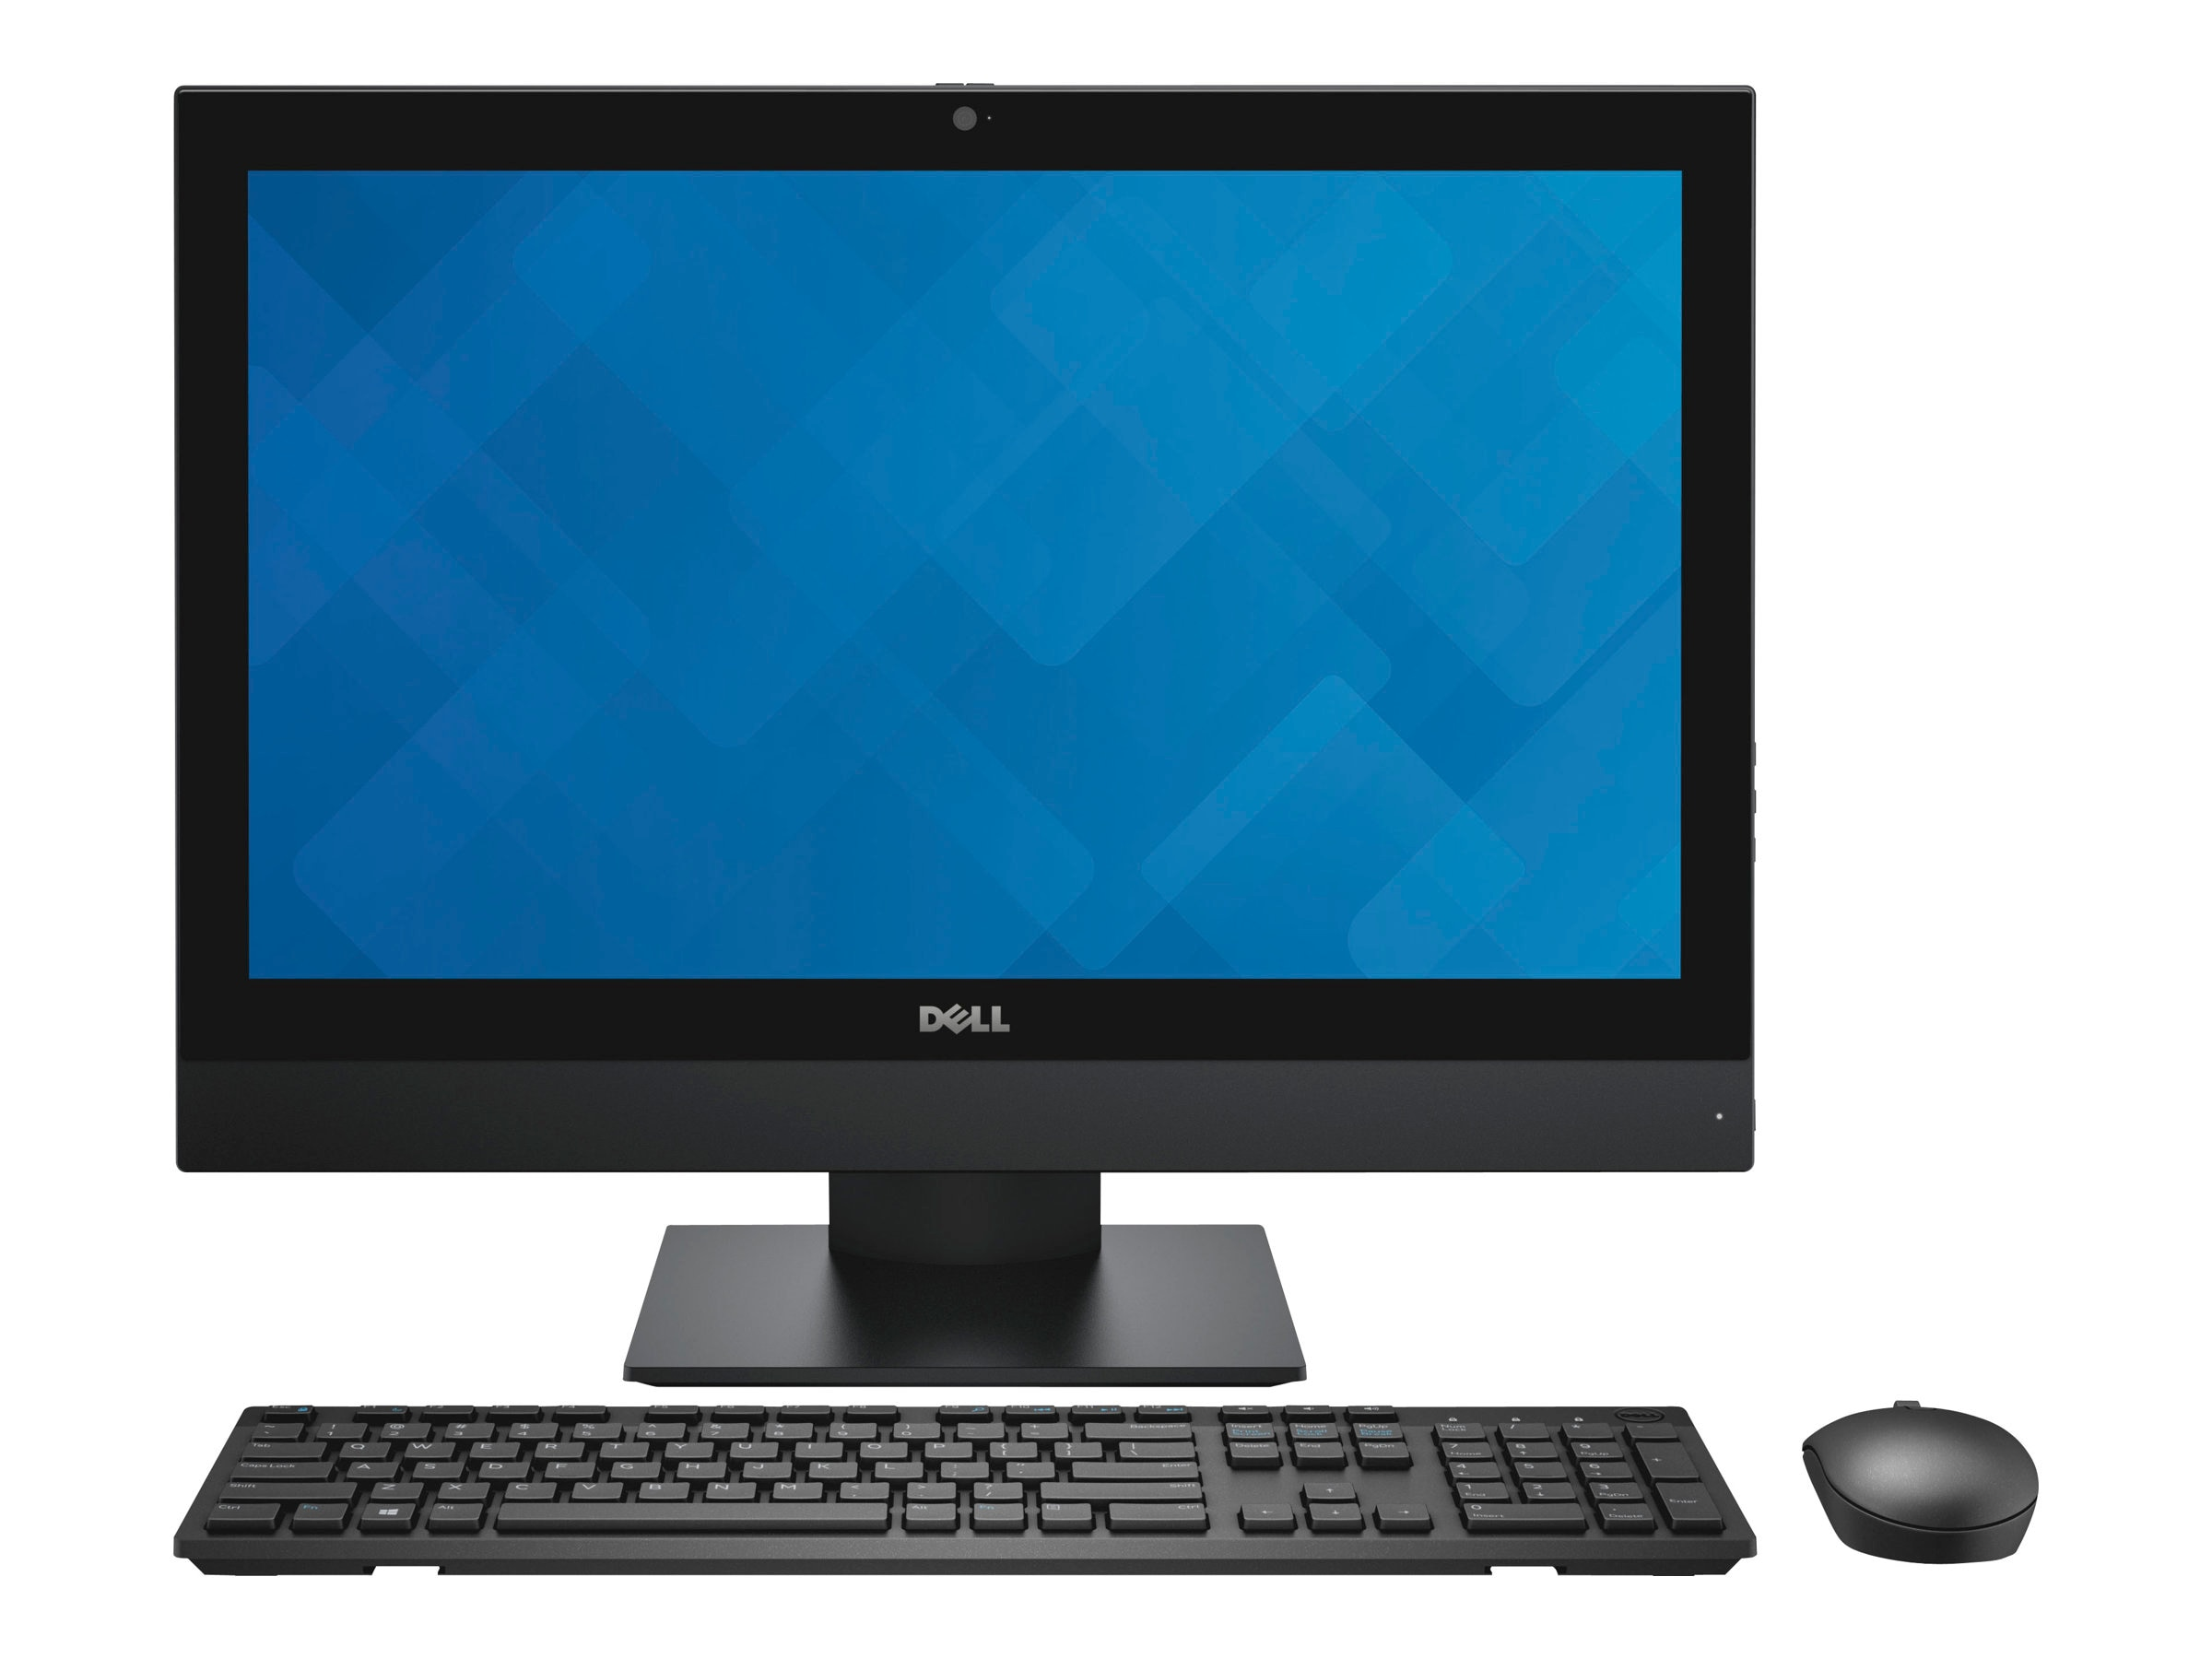 Dell OptiPlex 3240 AIO Core i5-6500 3.2GHz 8GB 256GB SSD DVD+RW GbE ac BT W10P64, V3T1H